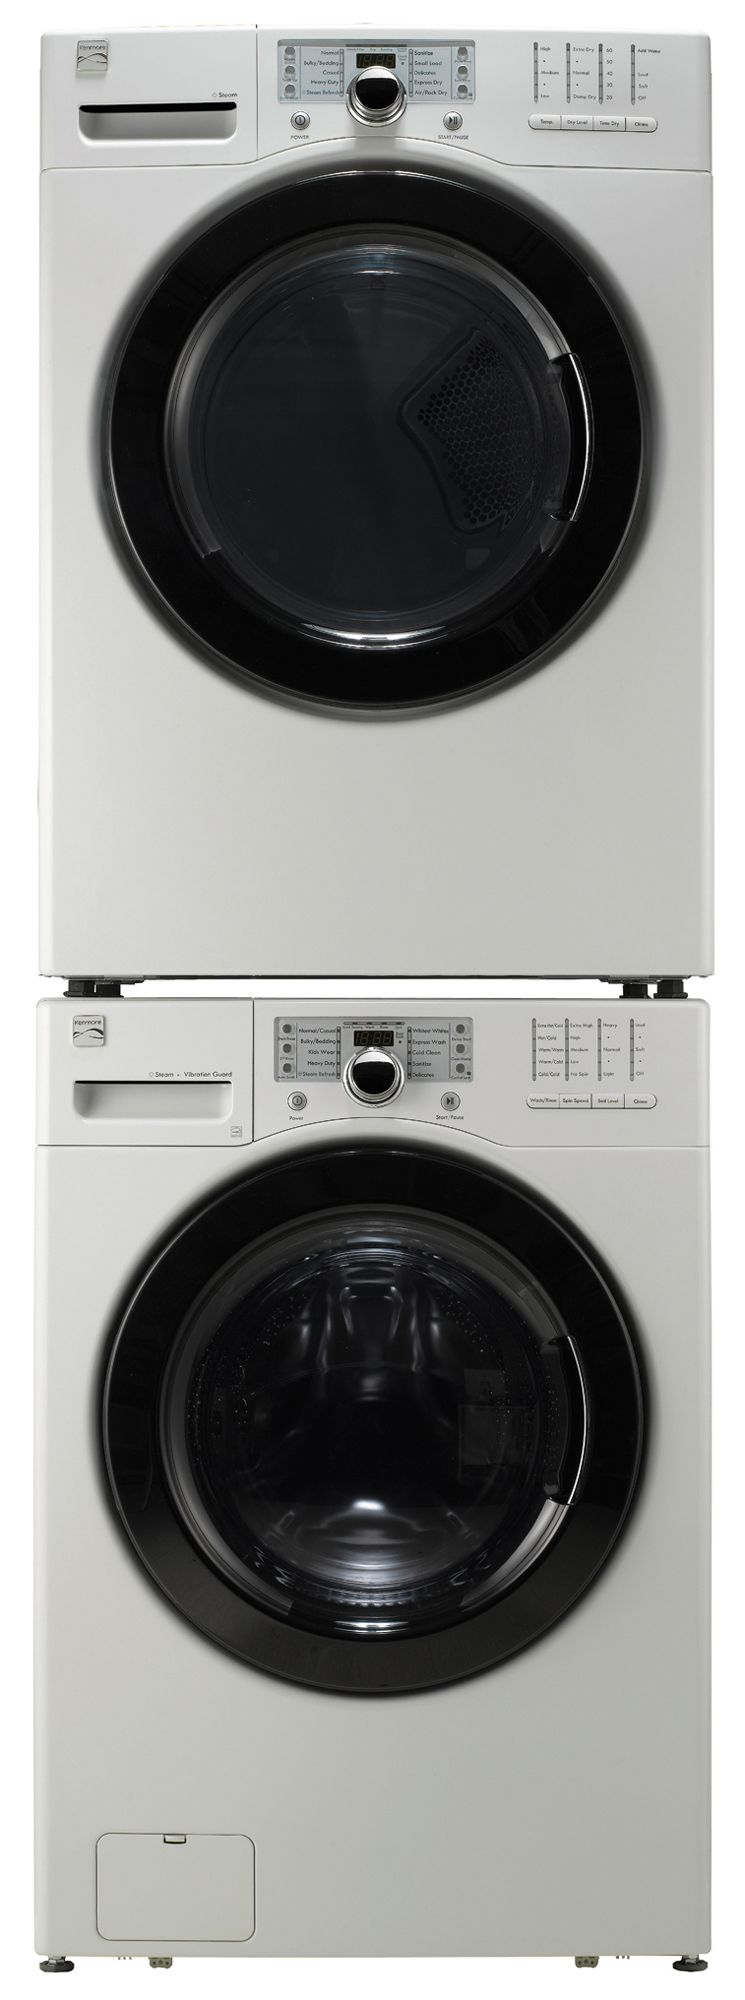 Kenmore 3.6 cu. ft. Front-Load Washing Machine w/ Steam - White